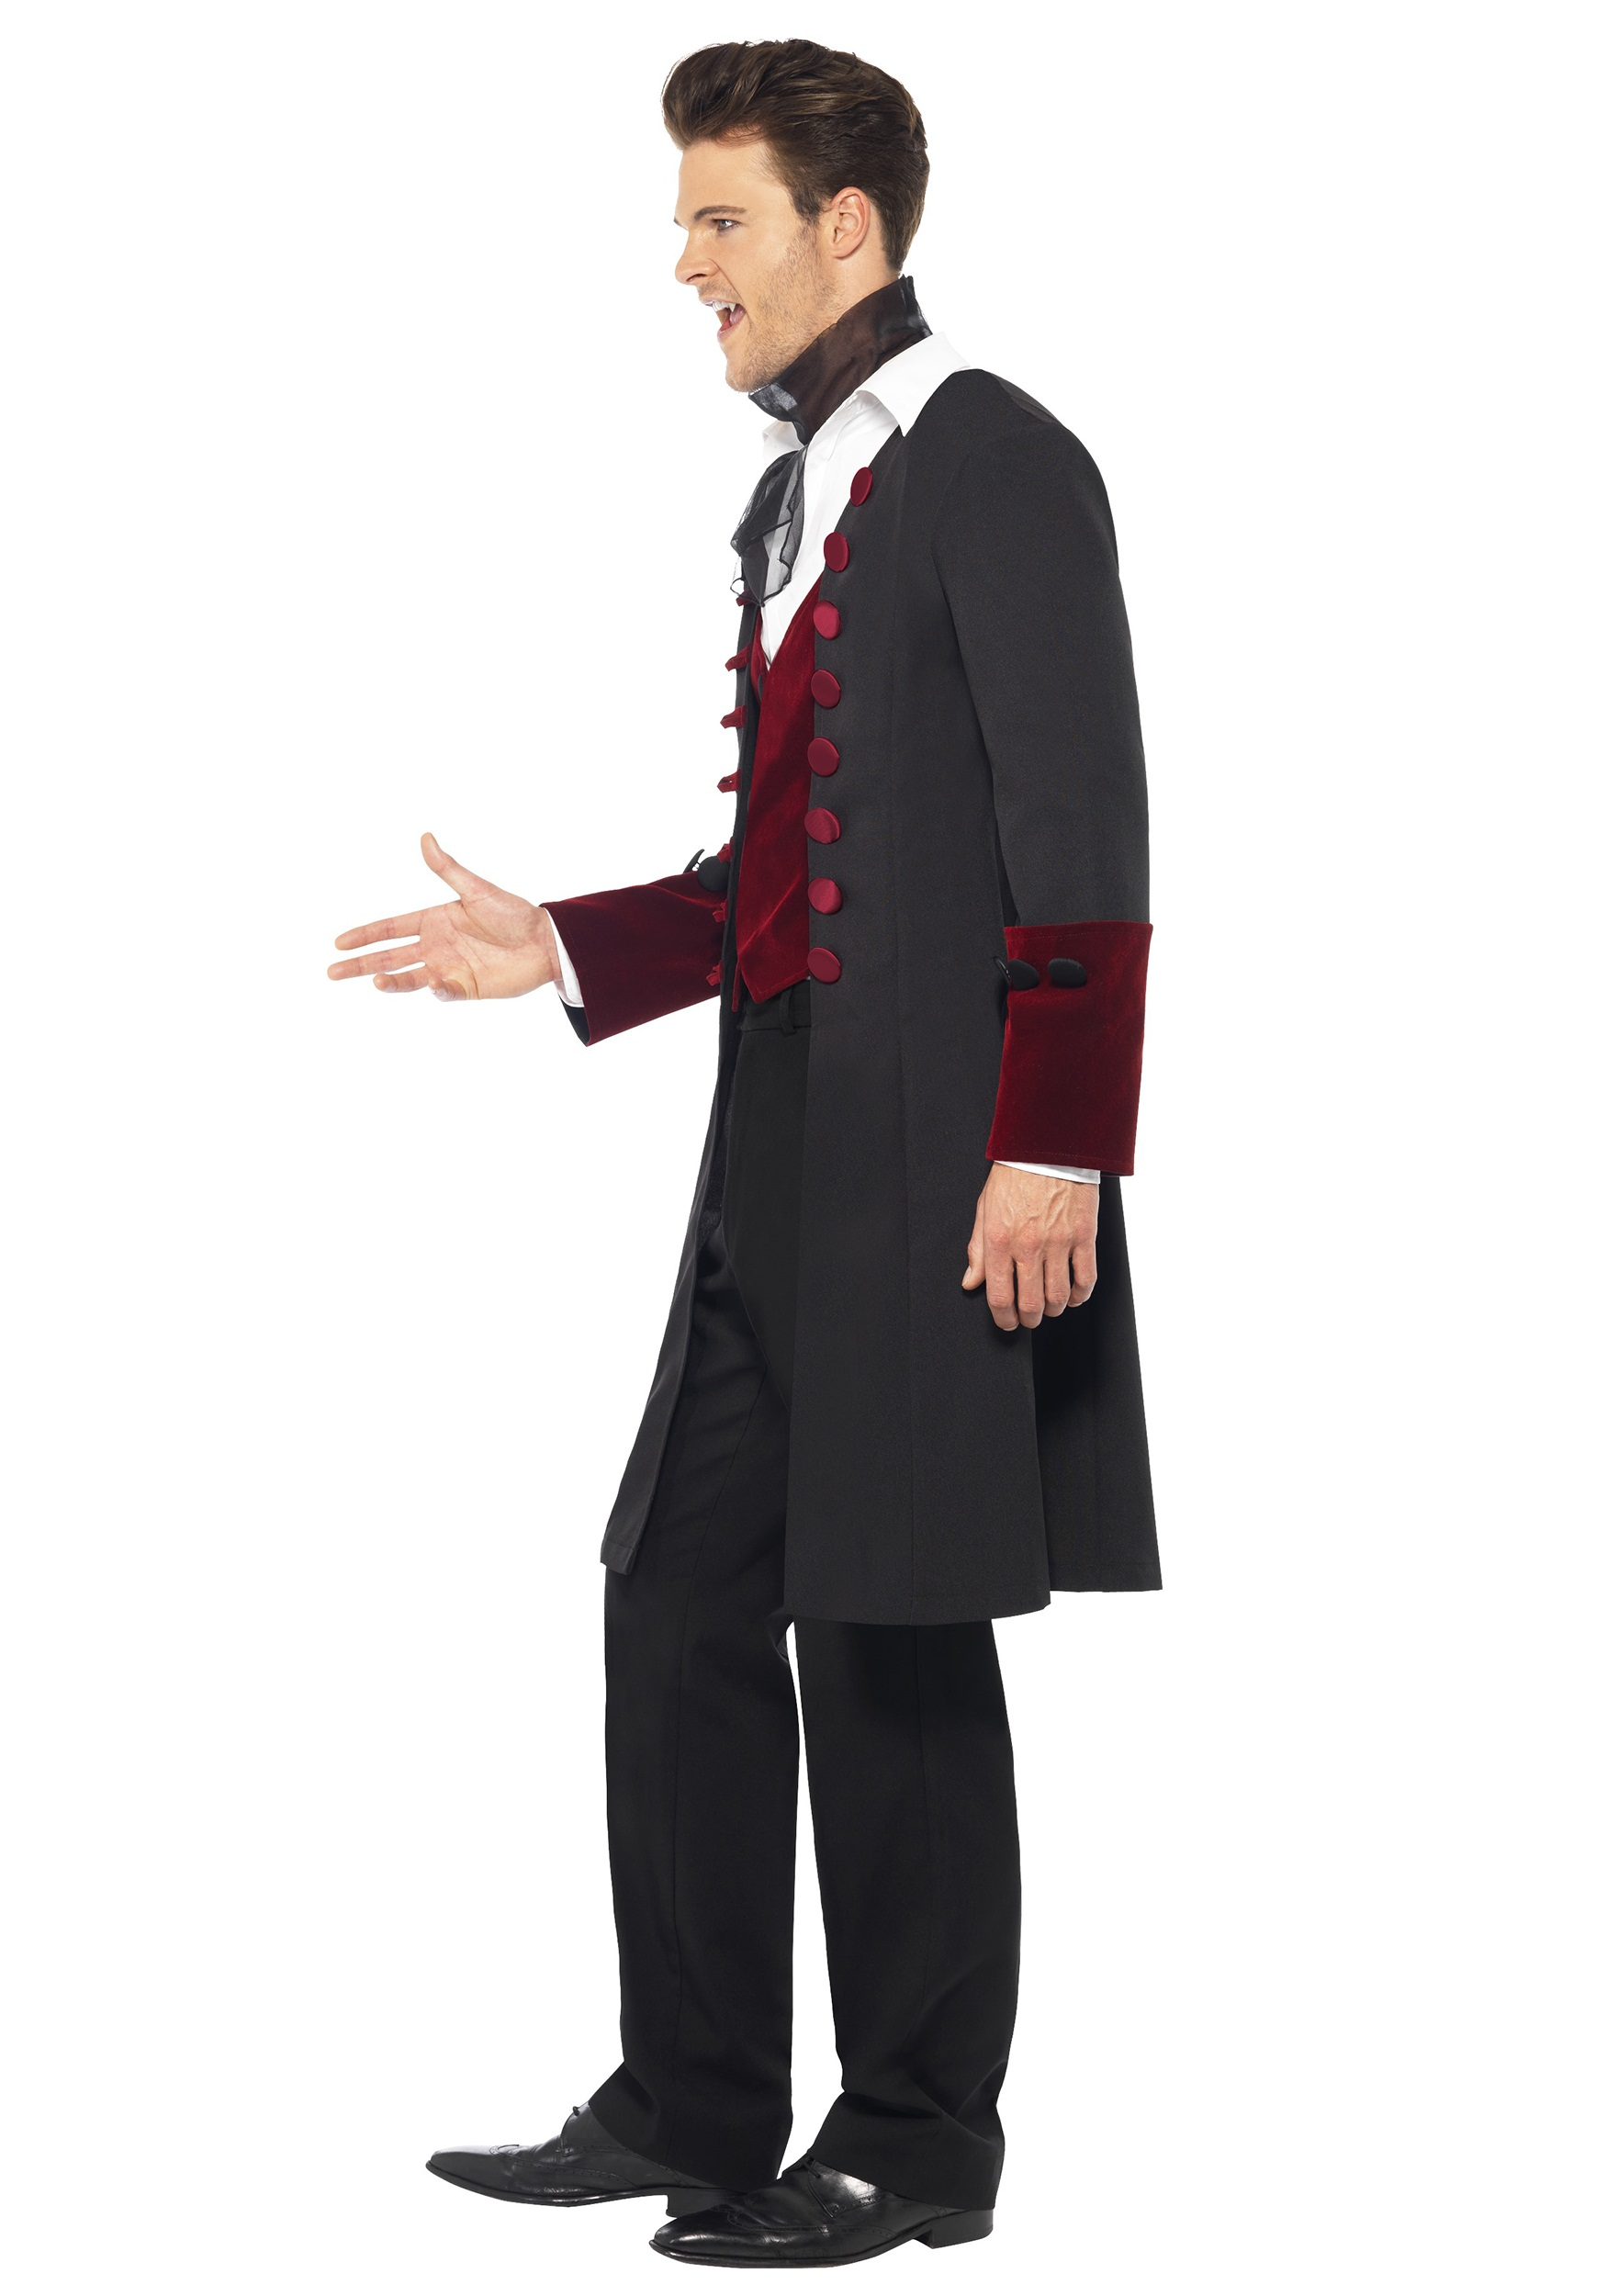 Halloween Fancy Dress Mens Gothic Vampire Costume Dracula Outfit by Smiffys